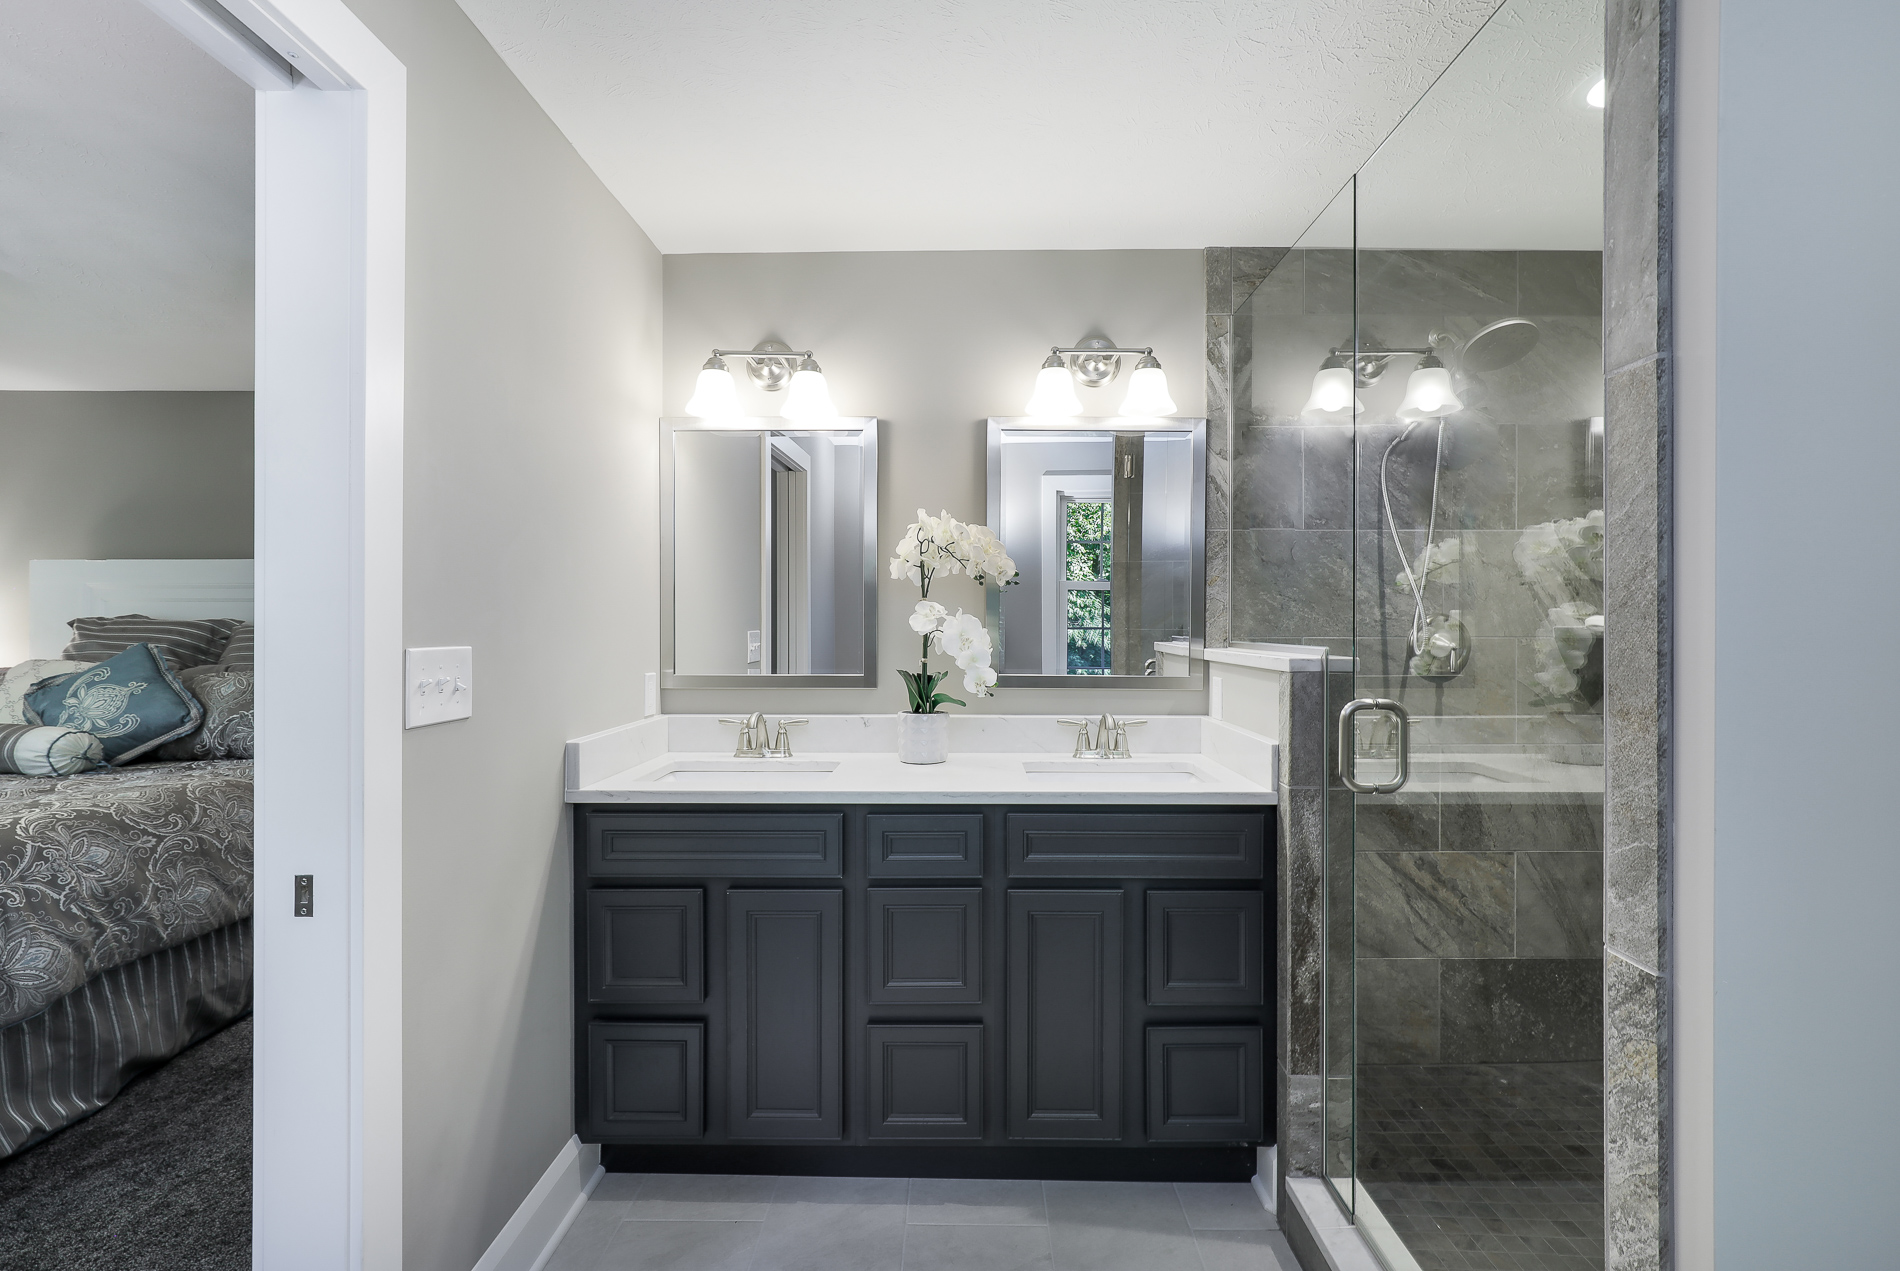 Alair-Homes-Cuyahoga-Falls-Making-Multigenerational-Living-a-Success-in-your-home-master-bedroom-